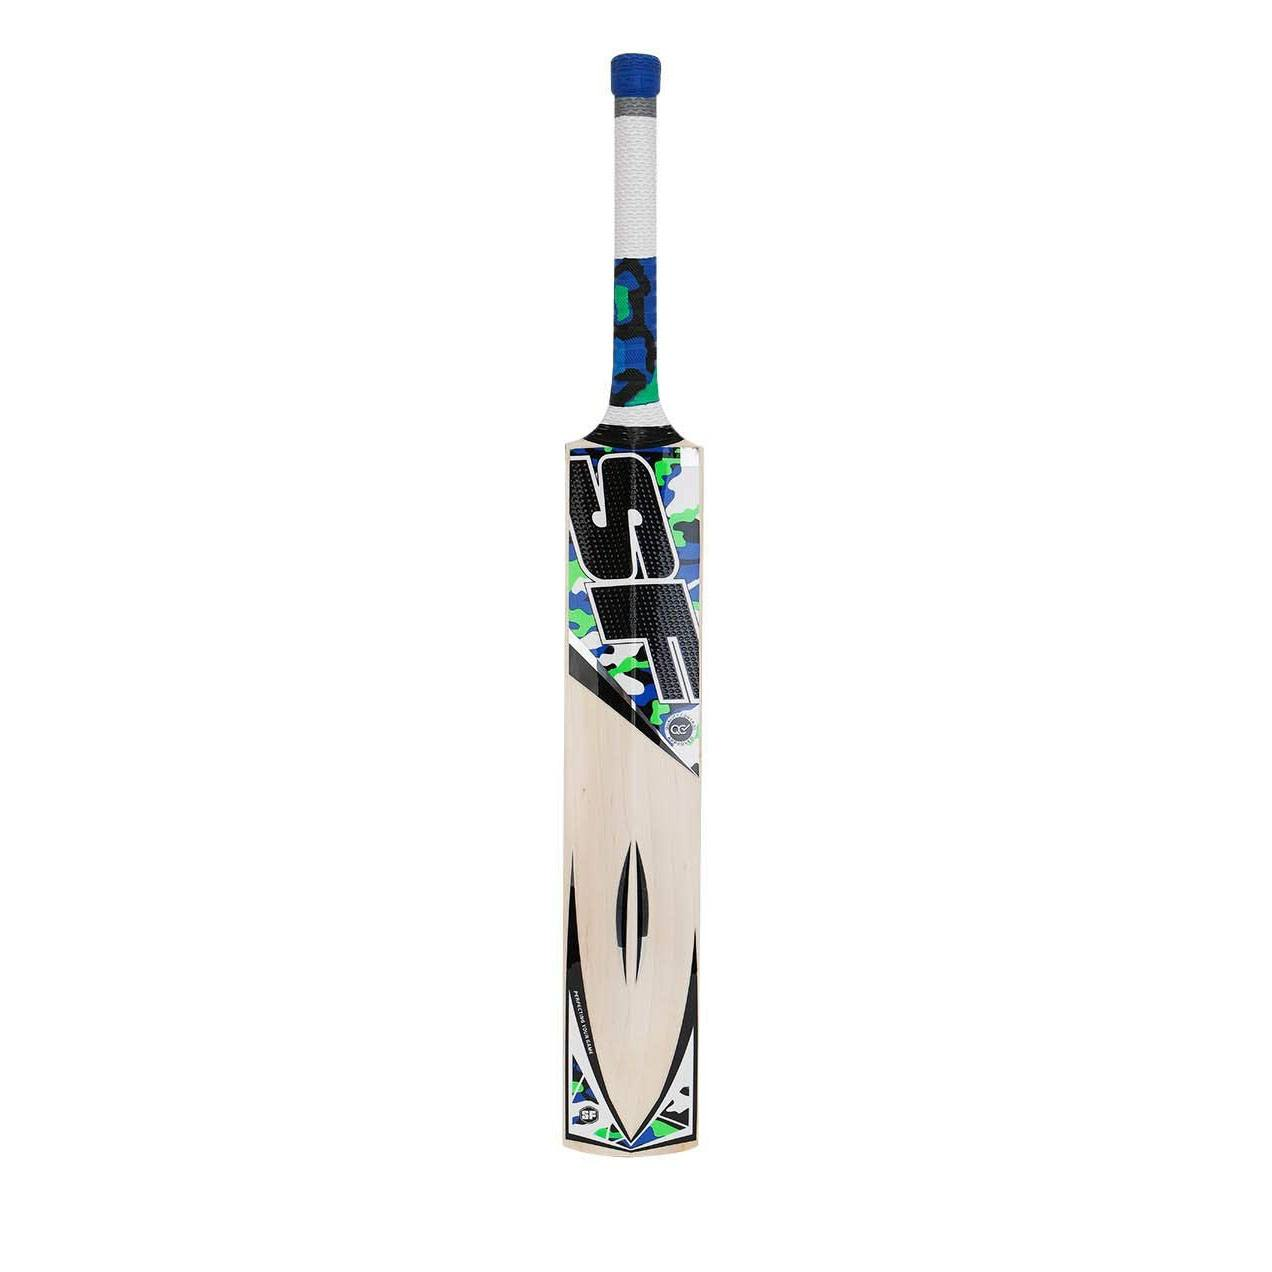 SF Bat is Best Quality 100% Original Leather Cricket Bat. Made up of Good Quality Wood to Play with Leather Cricket ball. Buy Online SF Bat